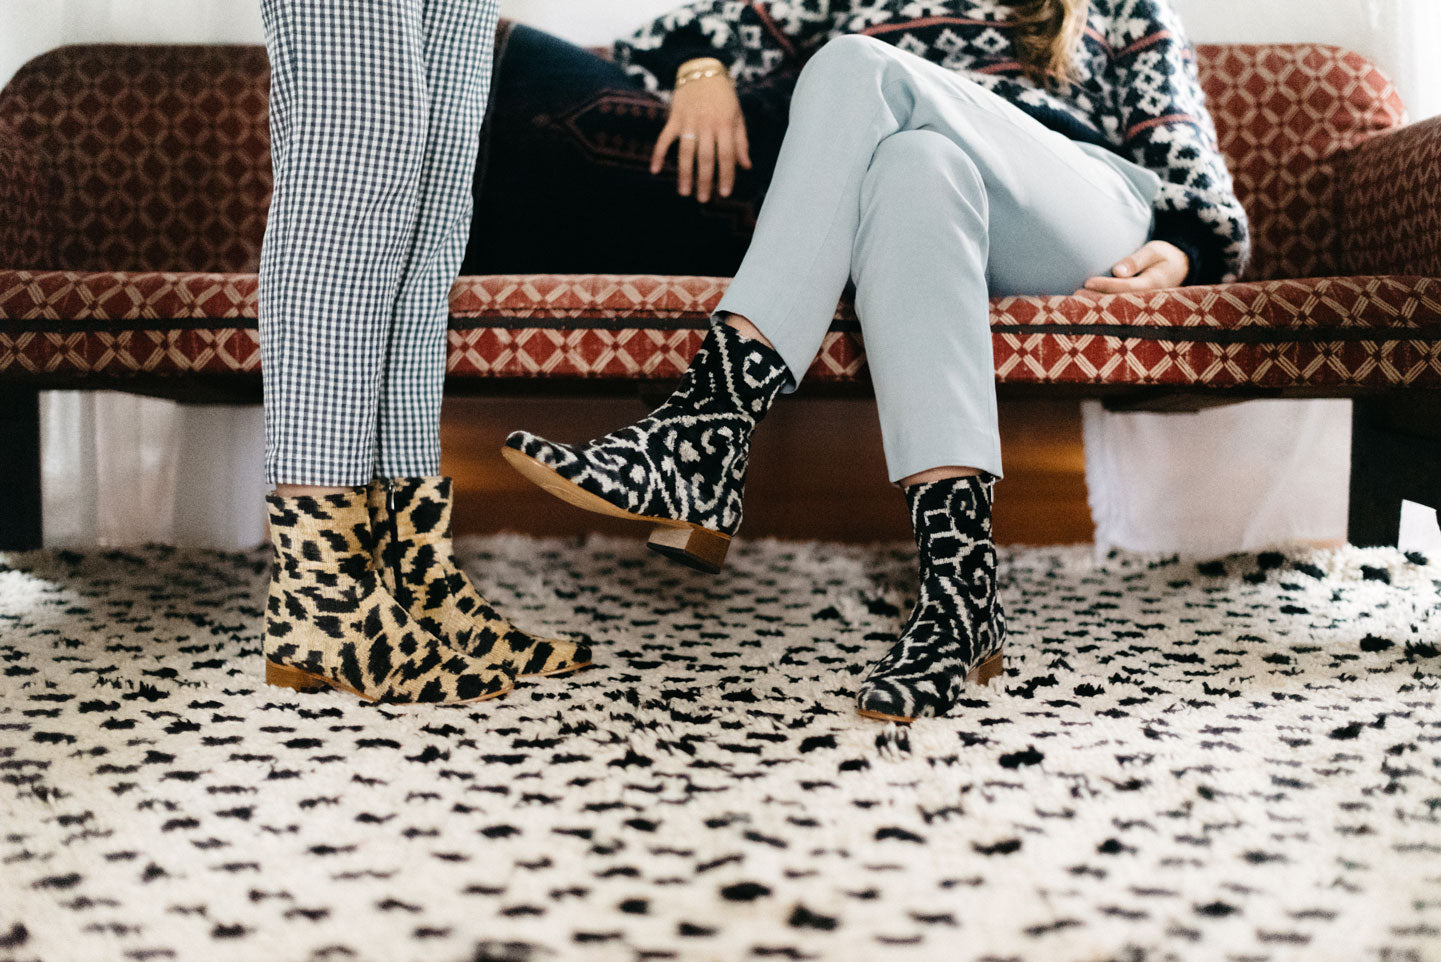 Our velvet boots styled on a moroccan carpet in the designer's home.